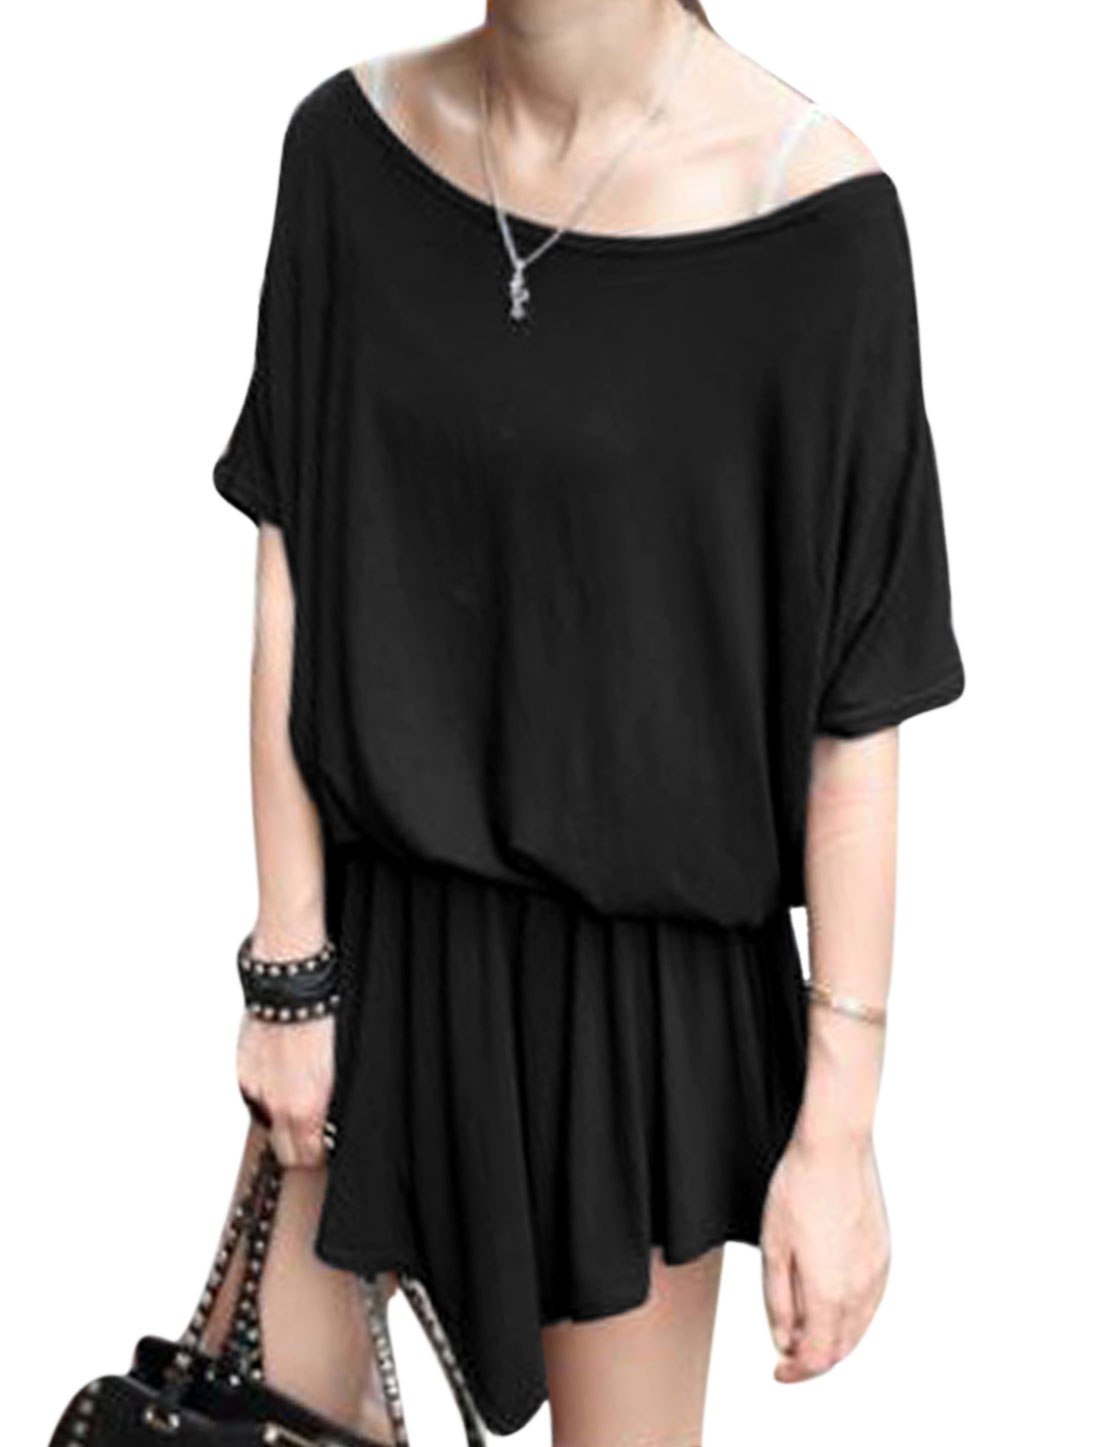 Women Short Batwing Sleeves Stretchy Waist Uneven Hem Casual Dress Black S